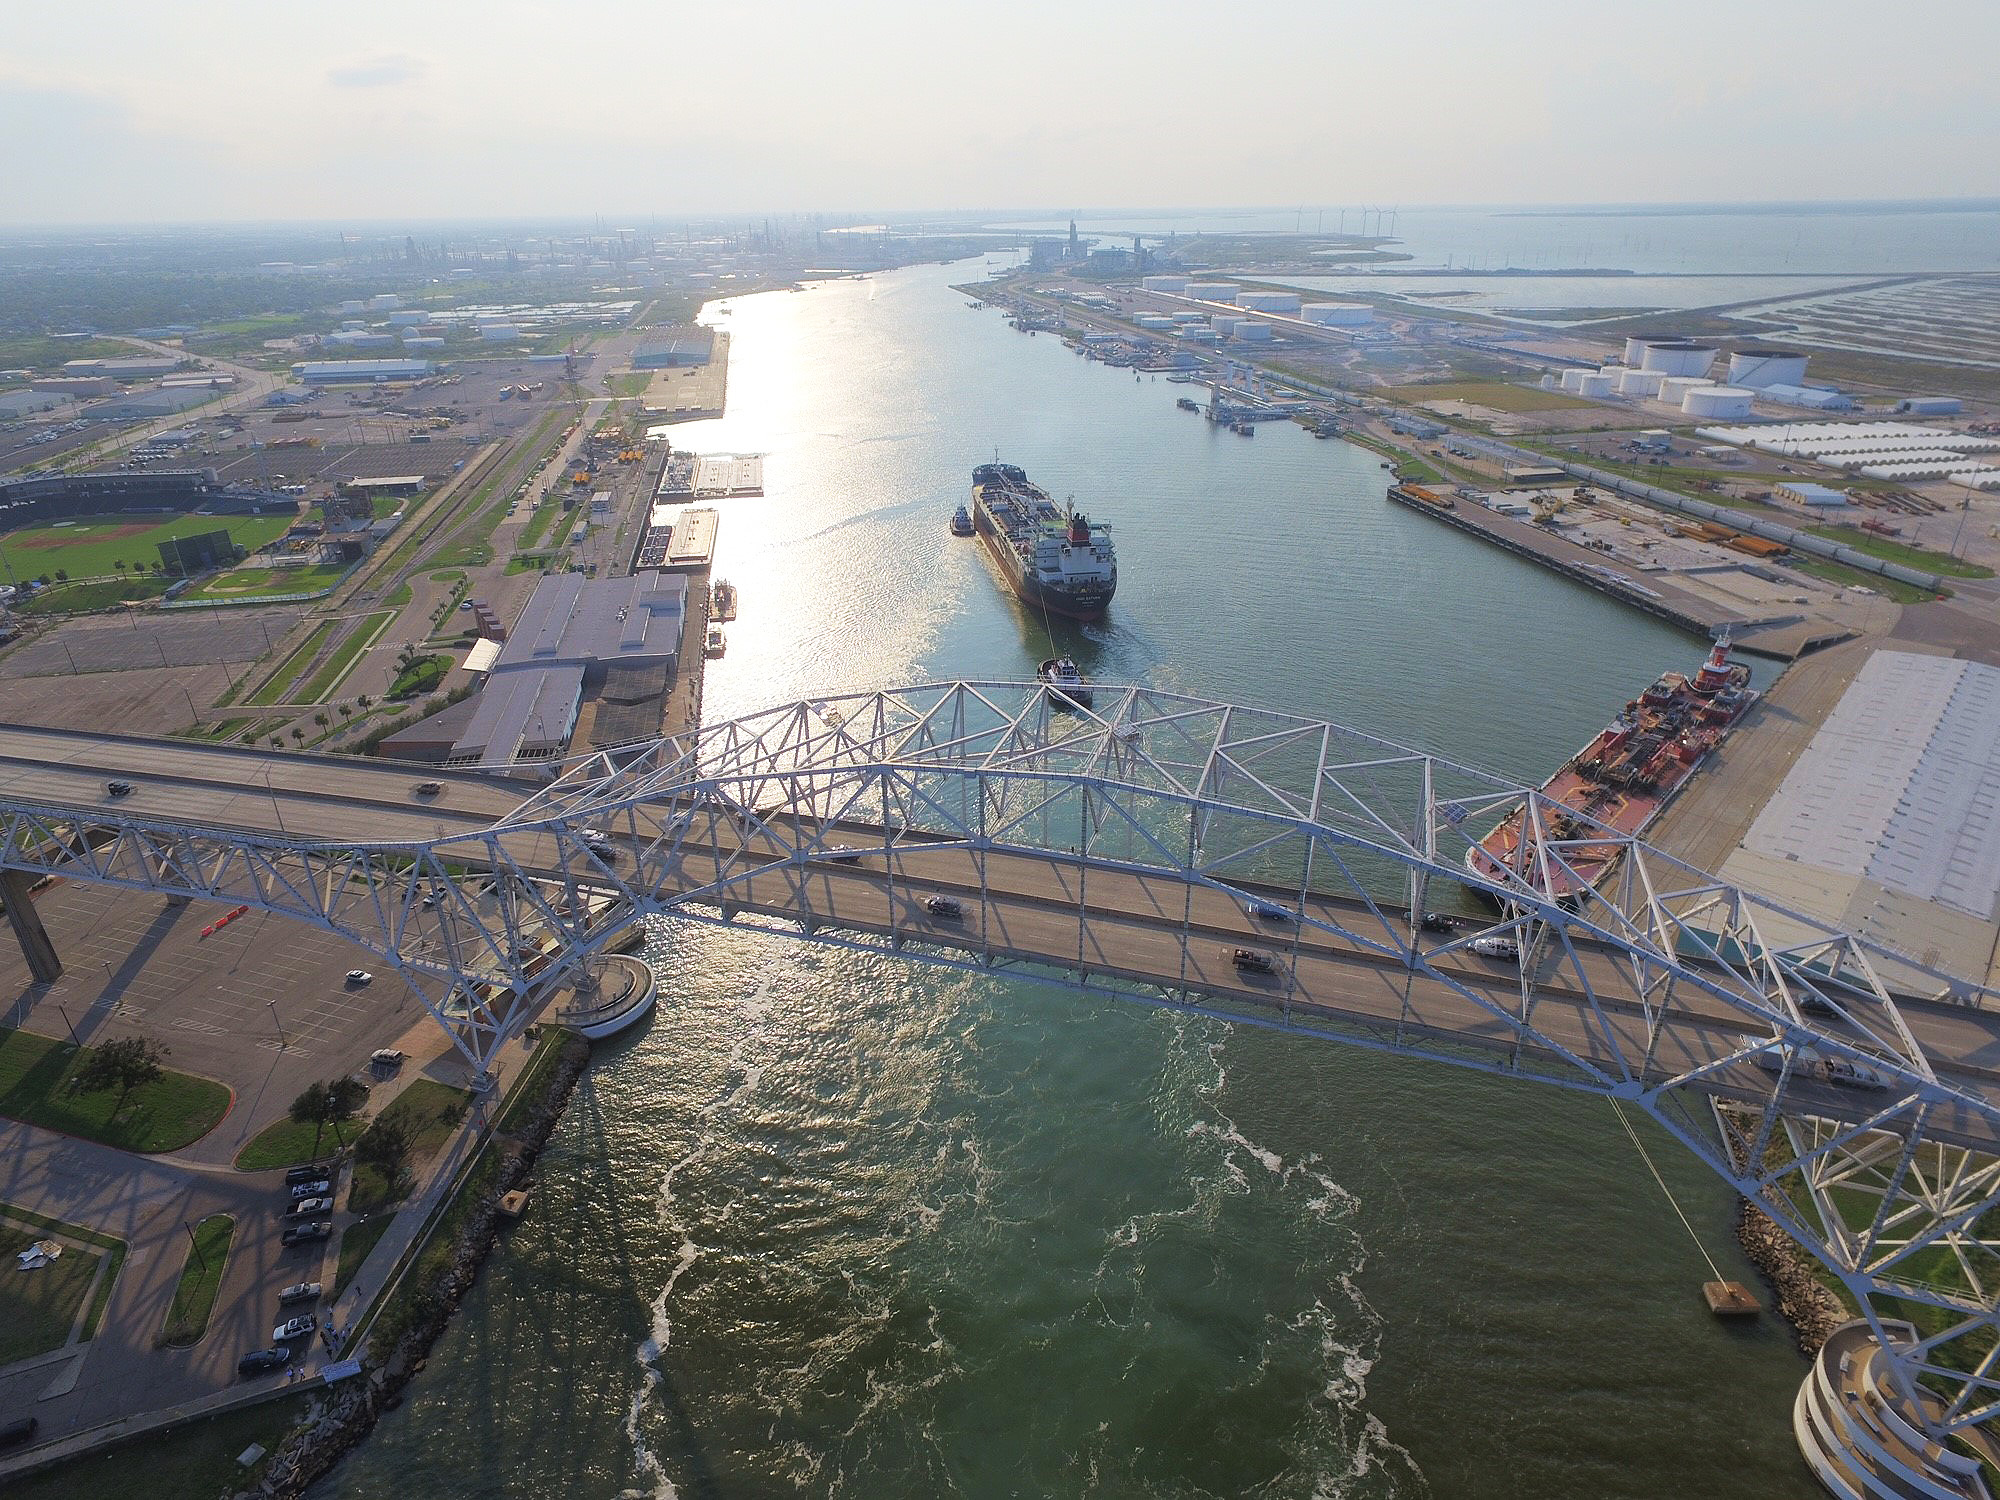 The Houston Ship Channel is going Biofriendly